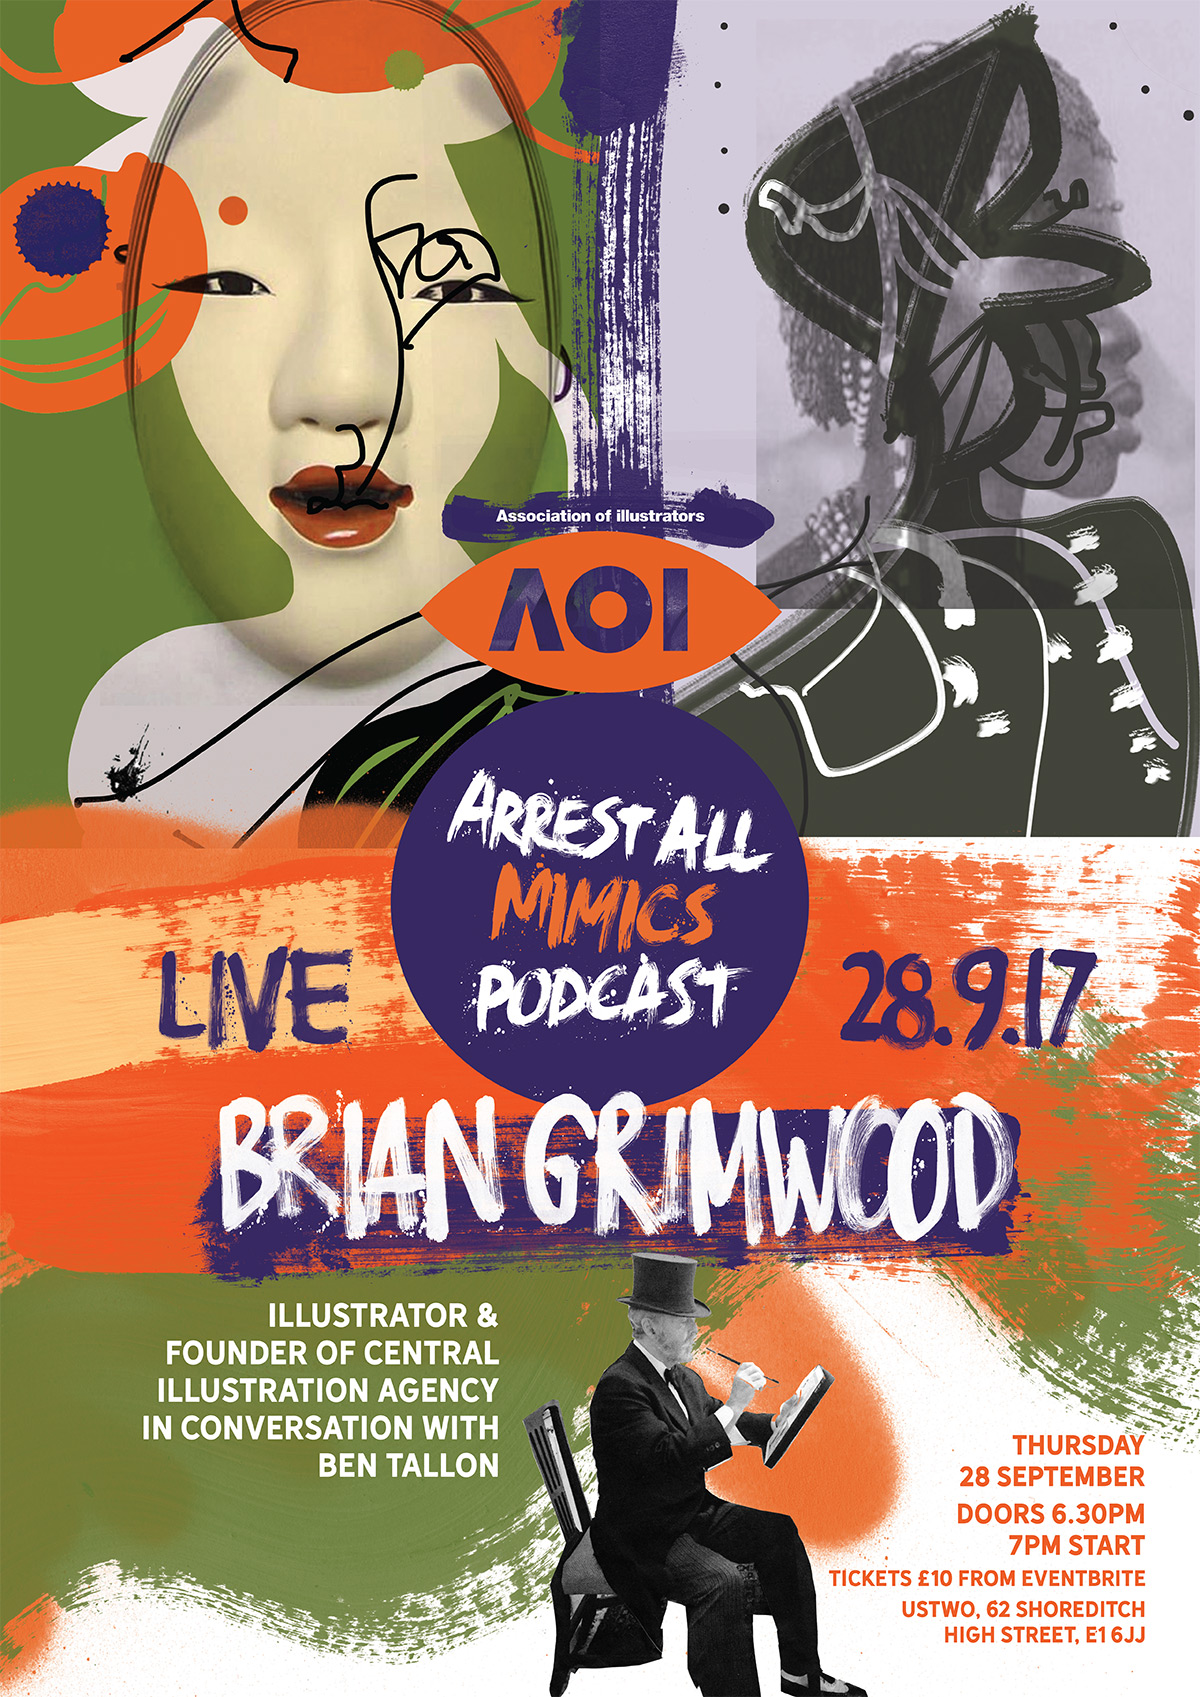 Brian Grimwood in conversation with Ben Tallon, Arrest All Mimics live poster design and illustration, CIA founder, illustrator in London, artist, digital illustrator, line drawing and creative